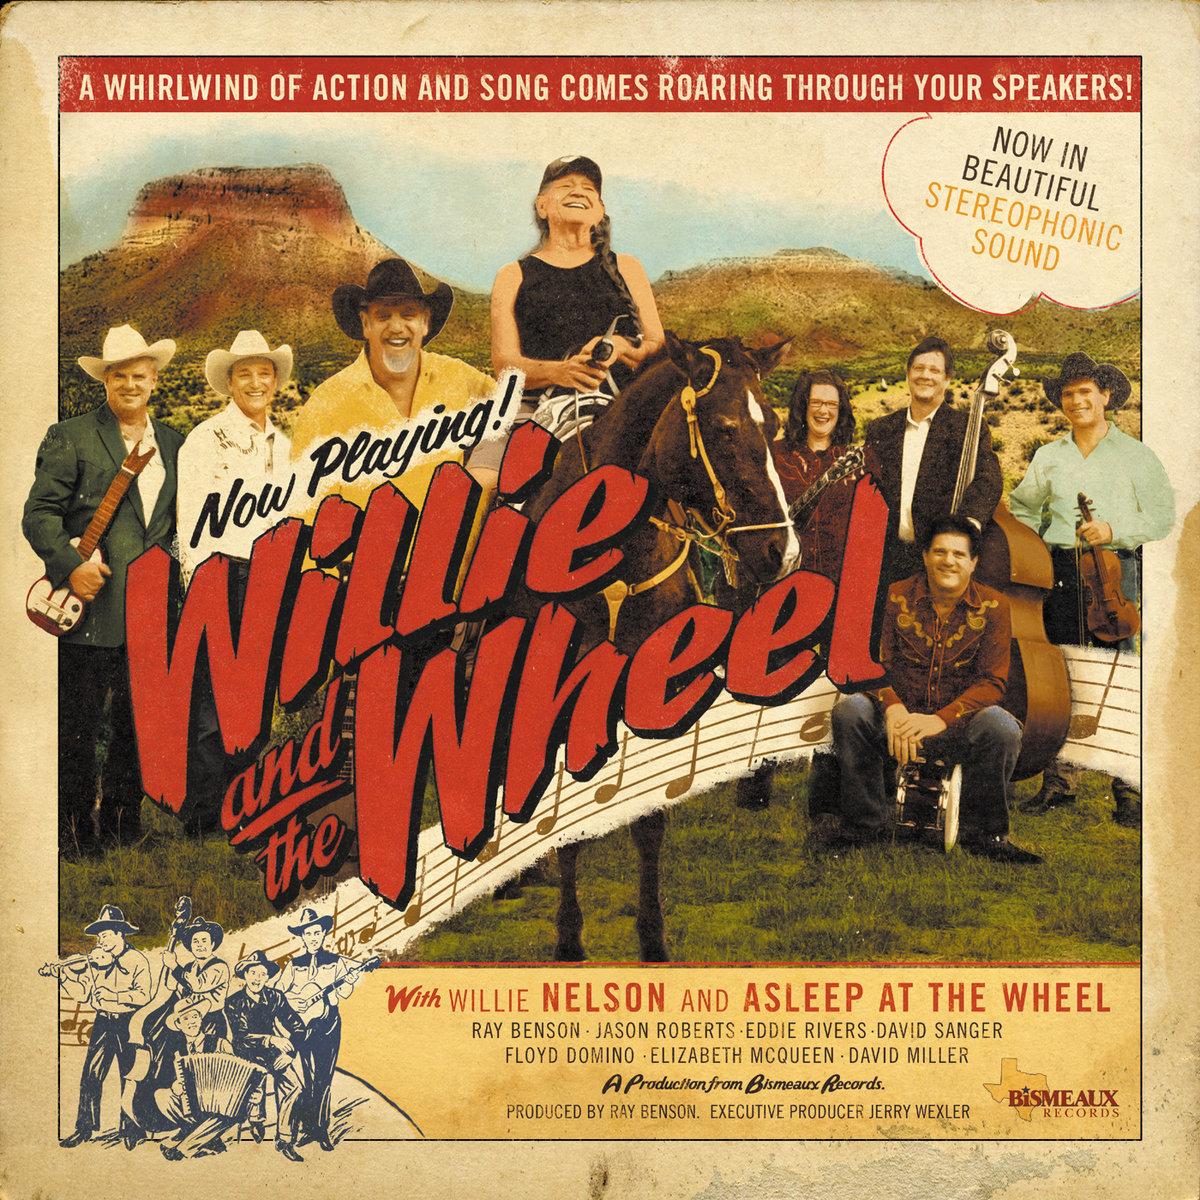 Asleep at the Wheel Album Covers